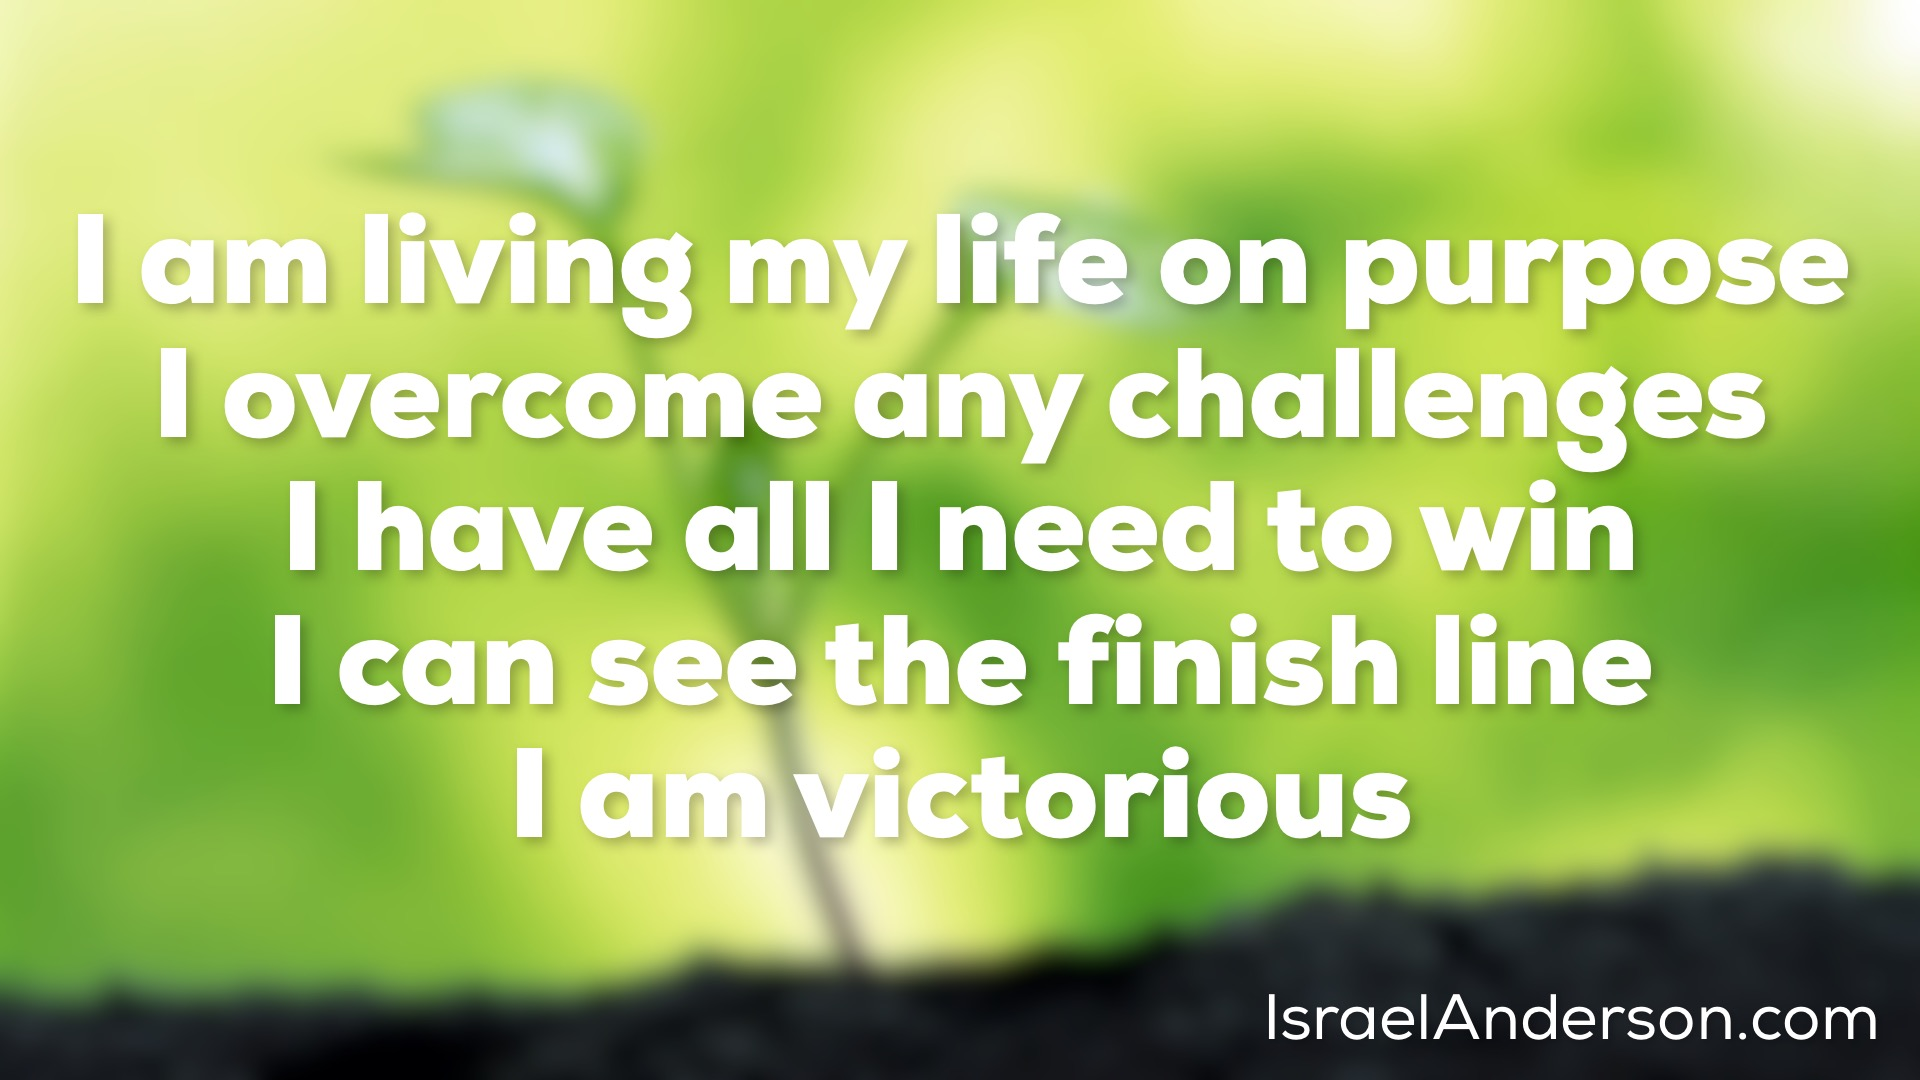 I am living my life on purpose I overcome any challenges I have all I need to win I can see the finish line I am victorious